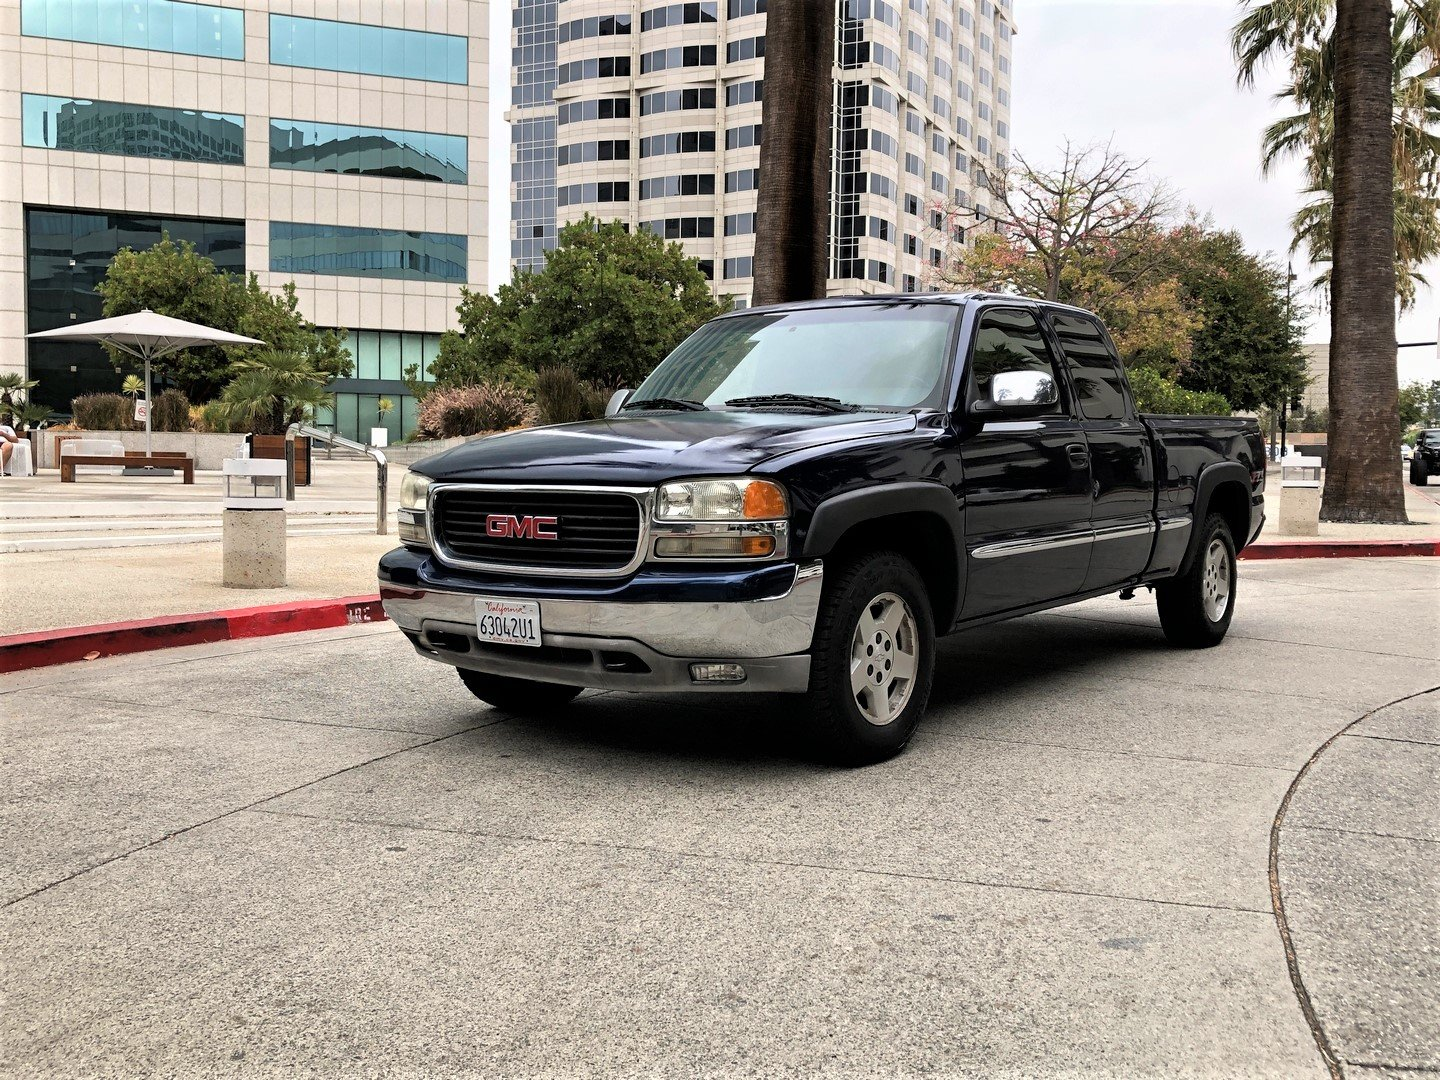 2002 GMC Sierra 1500 Z71 For Sale (picture 1 of 6)